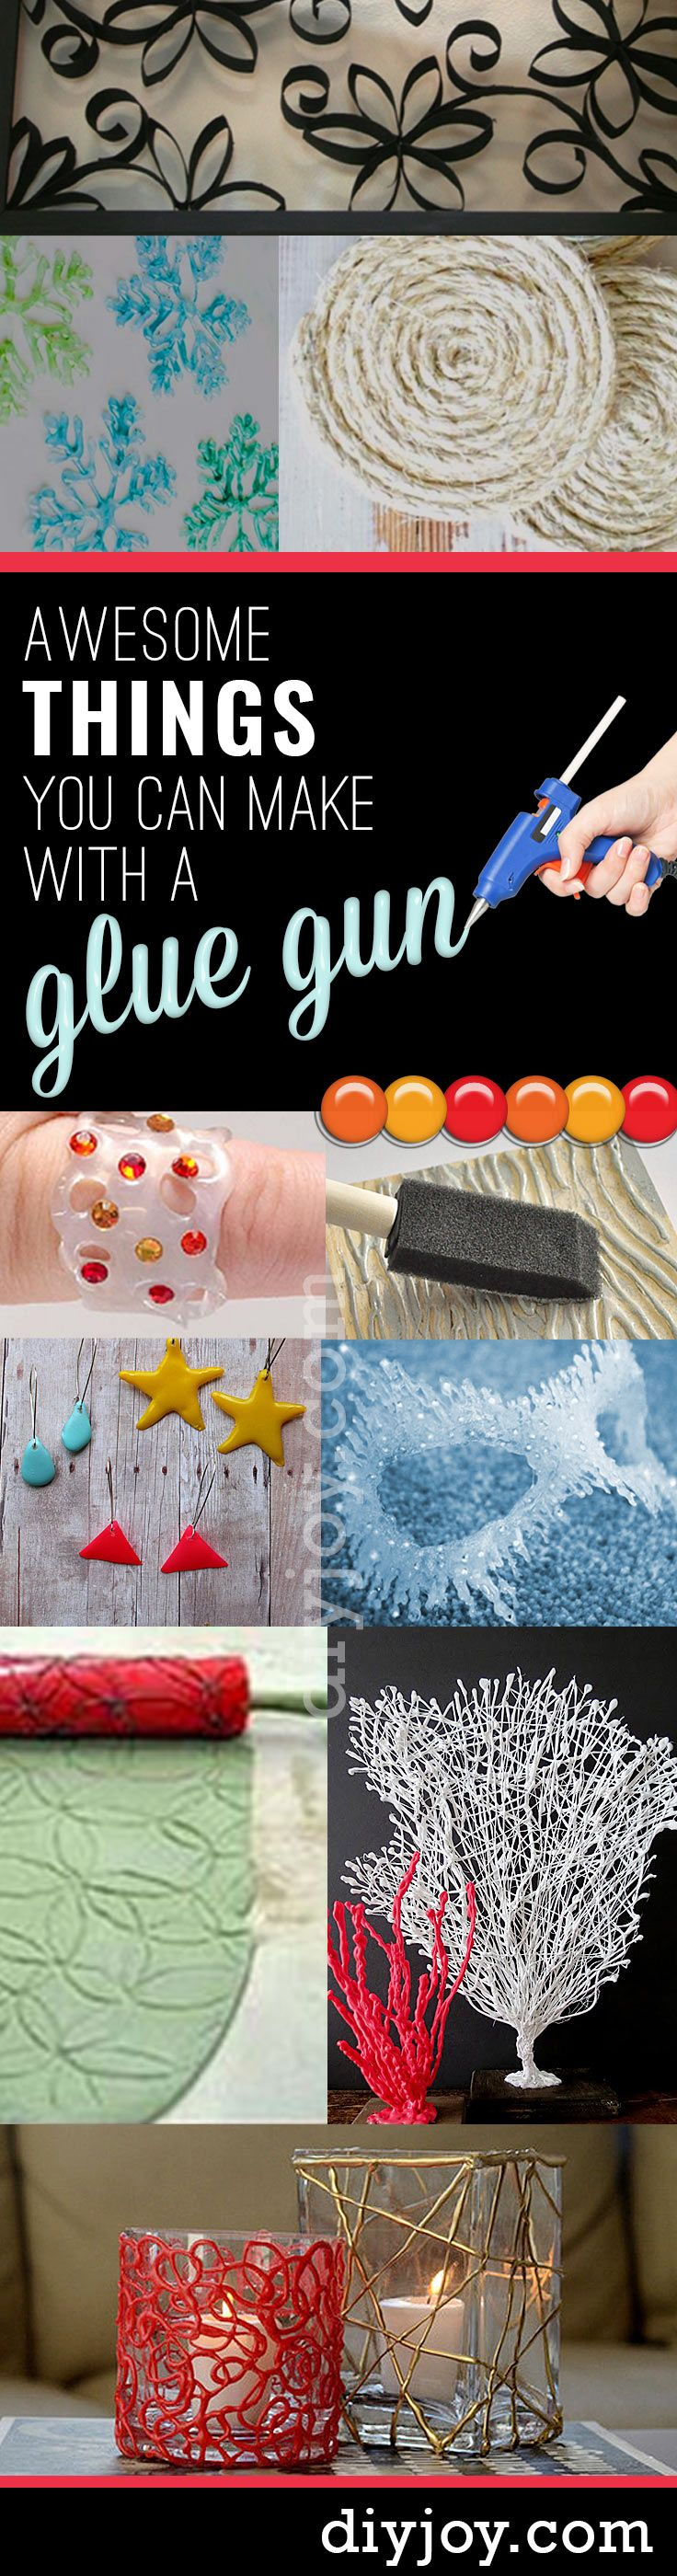 38 Unbelievably Cool Things You Can Make With A Glue Gun